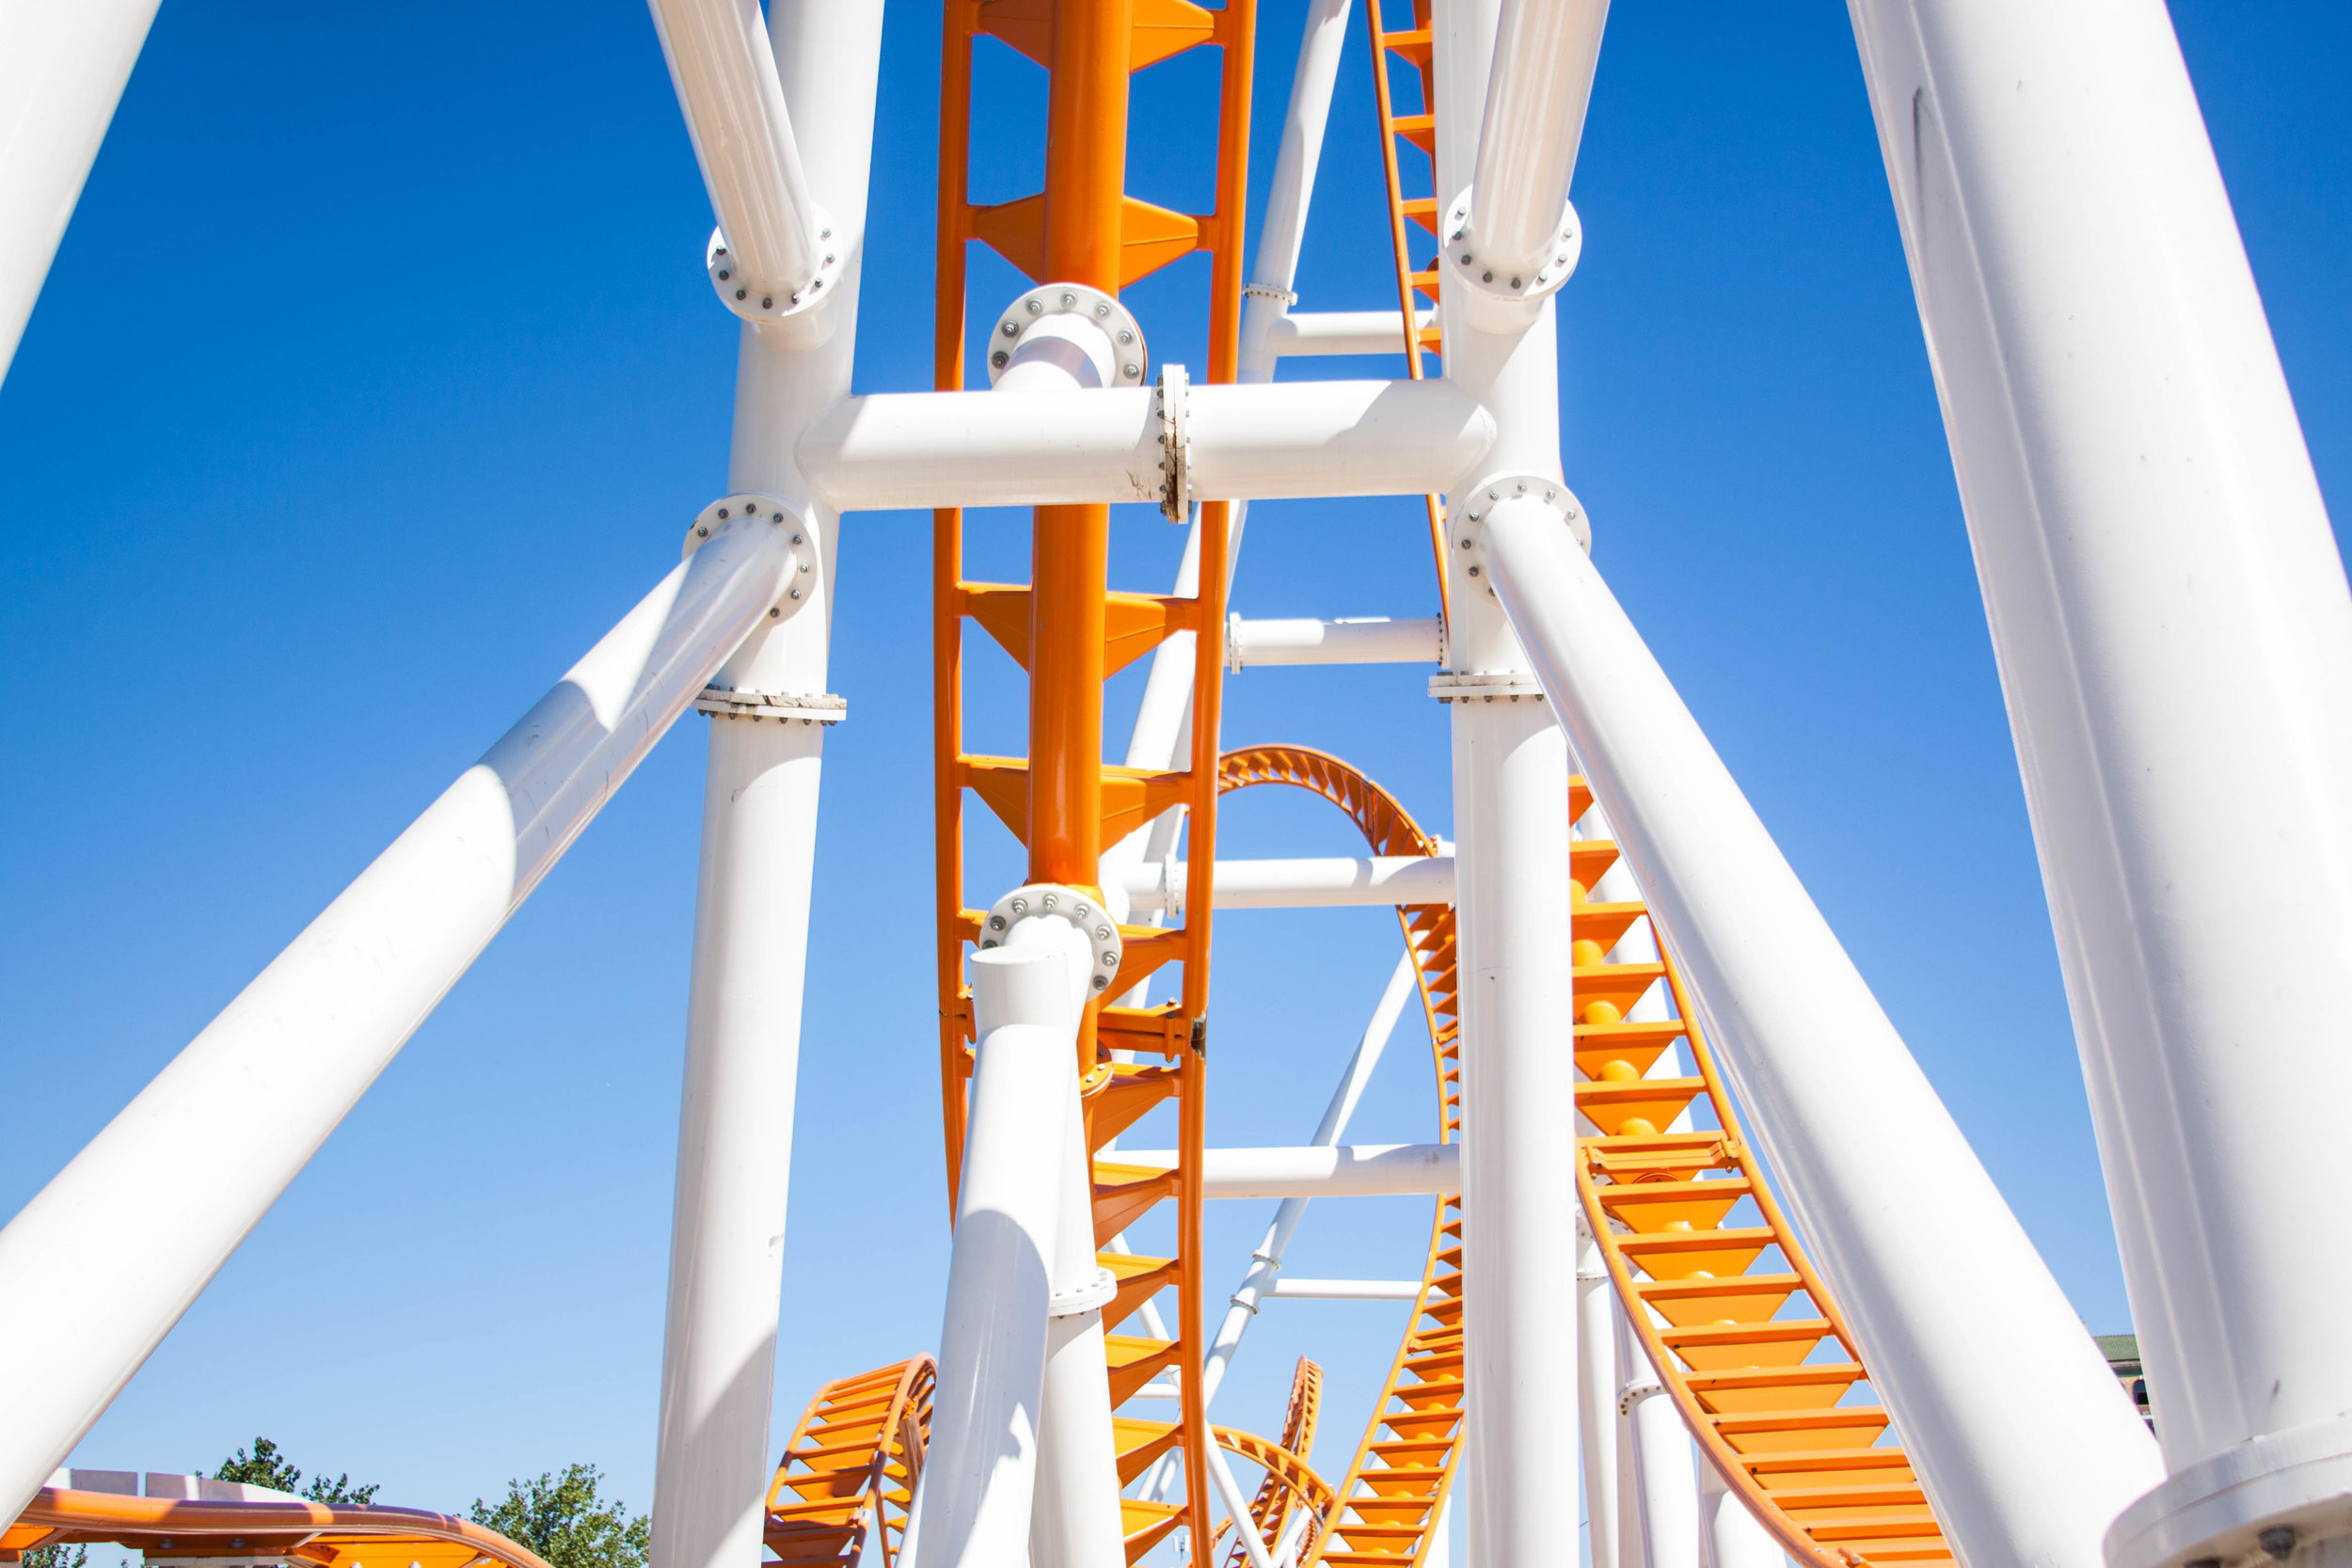 Under view of the Thunderbolt Rollercoaster with it's orange tracks and white support structure in the bright sunlight at Brooklyn's Coney Island. MEP designed by 2L Engineering.